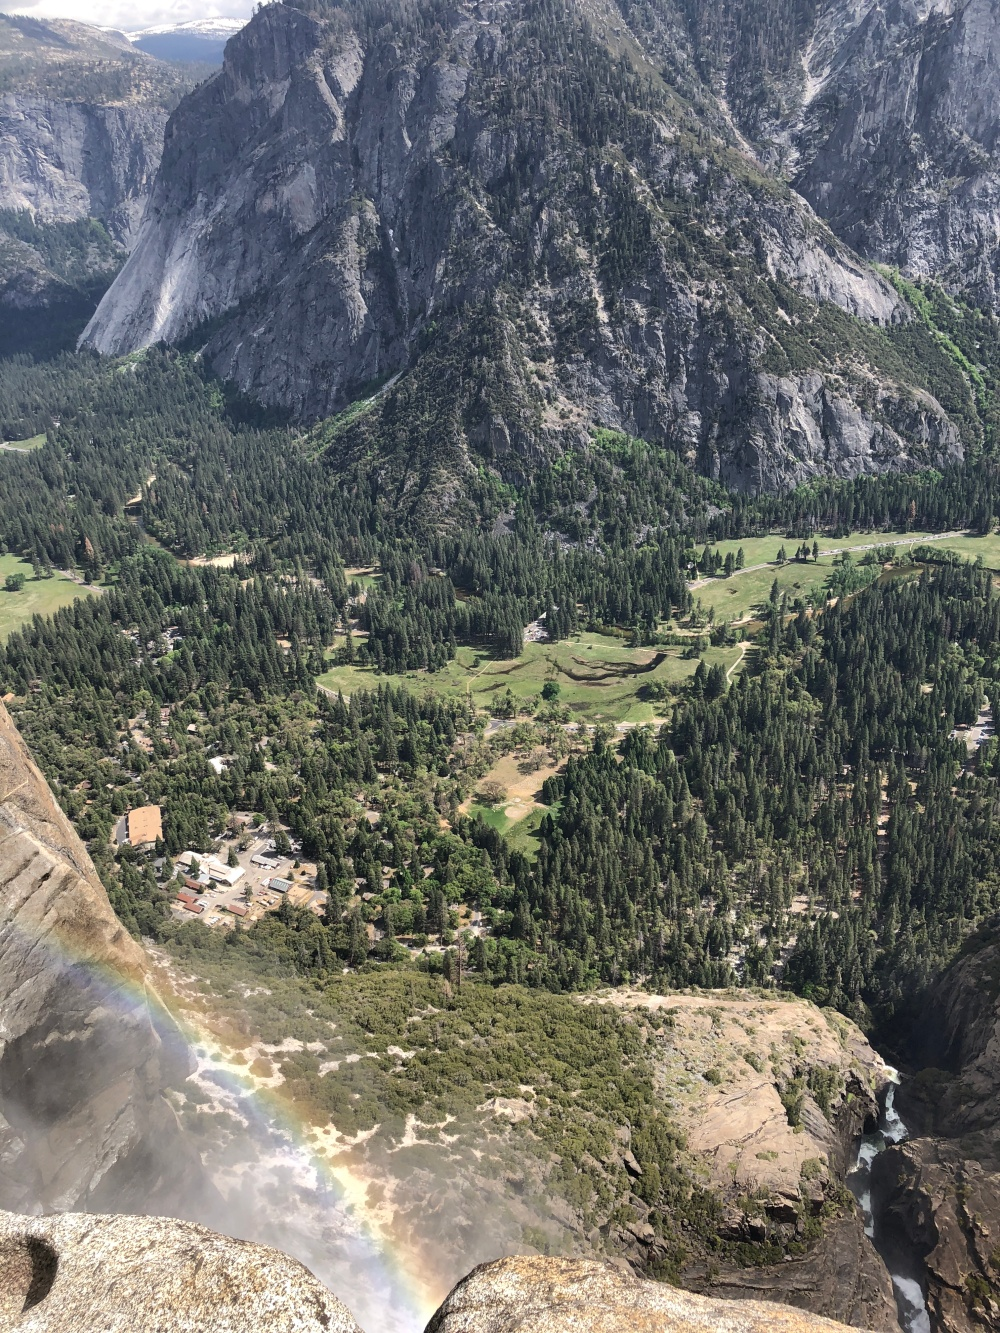 View from the top of Upper Yosemite Falls